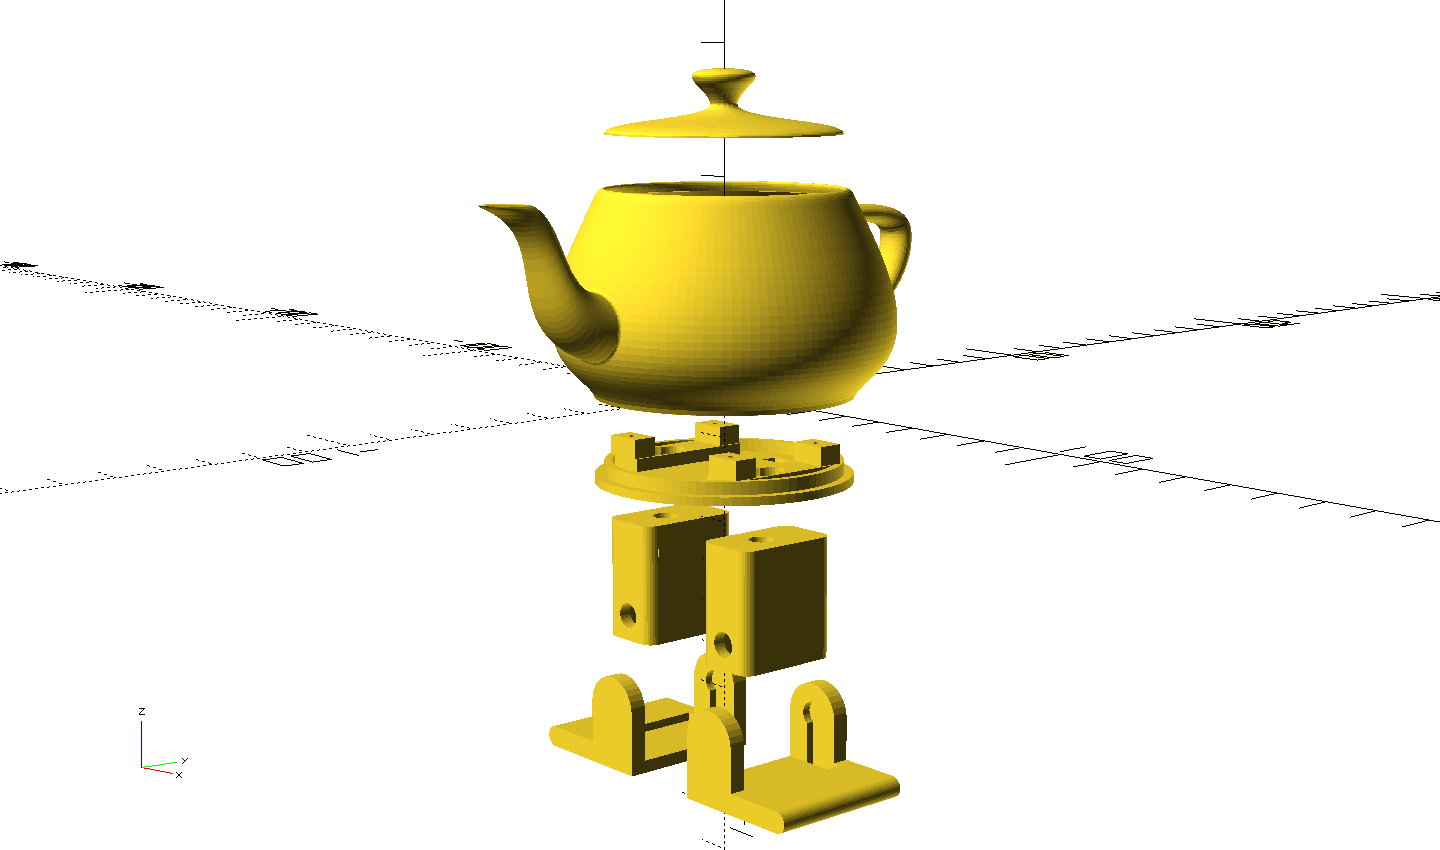 3D models forming the robotic teapot